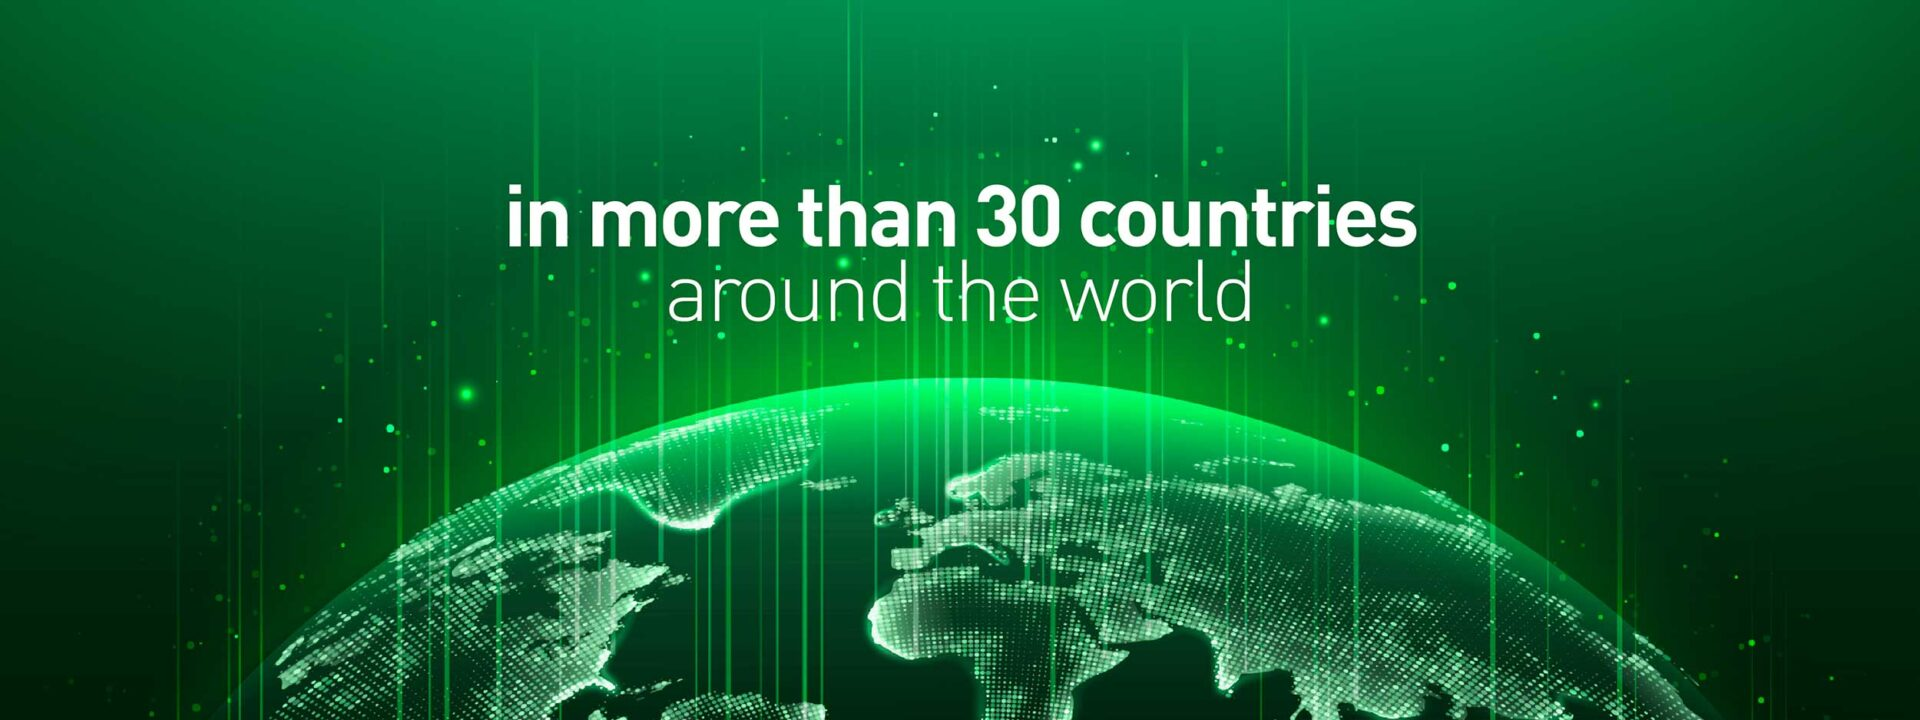 in more than 30 countries around the world